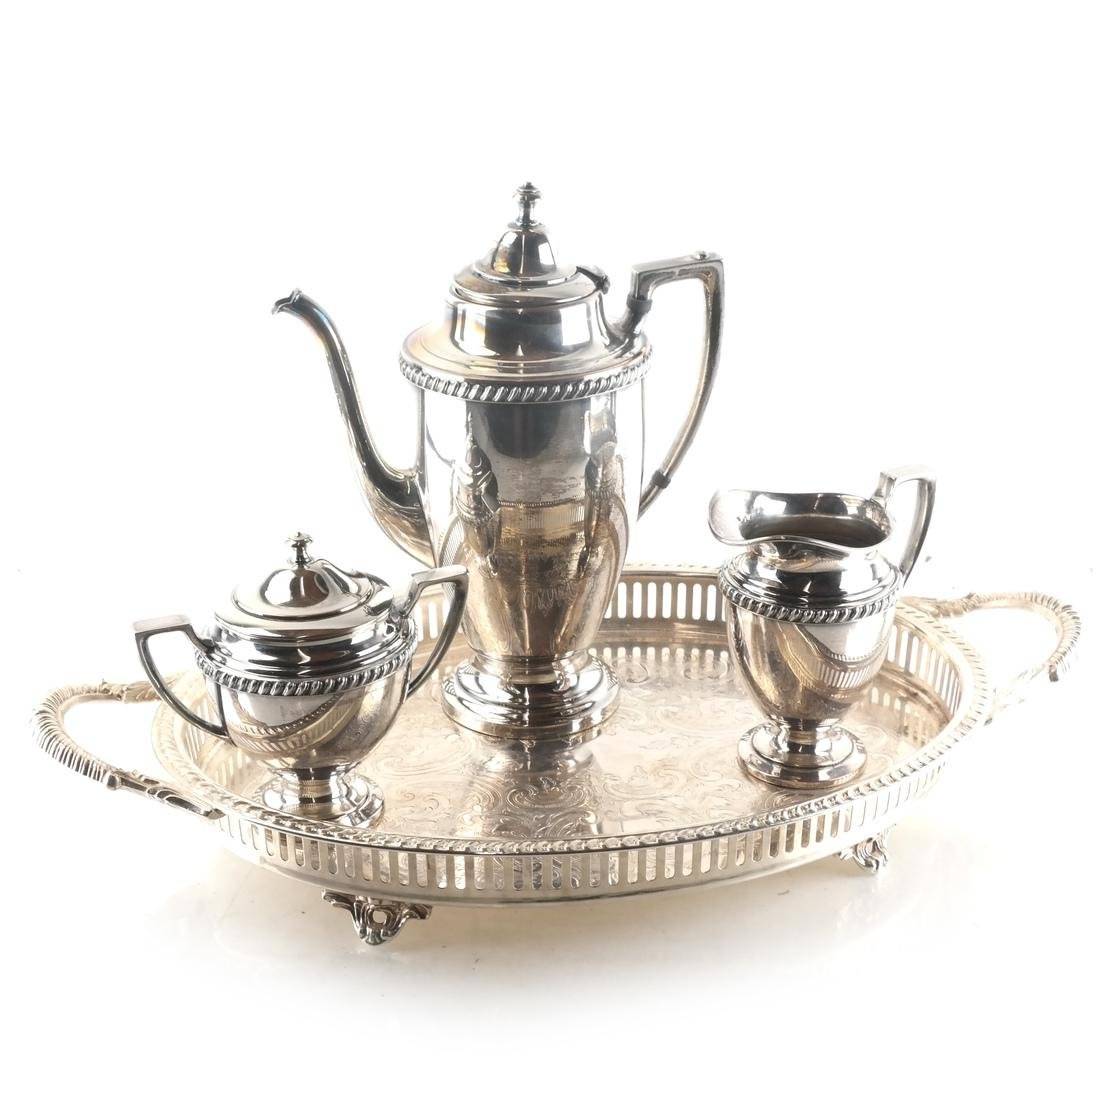 Four Piece Silver Plate Tea Service